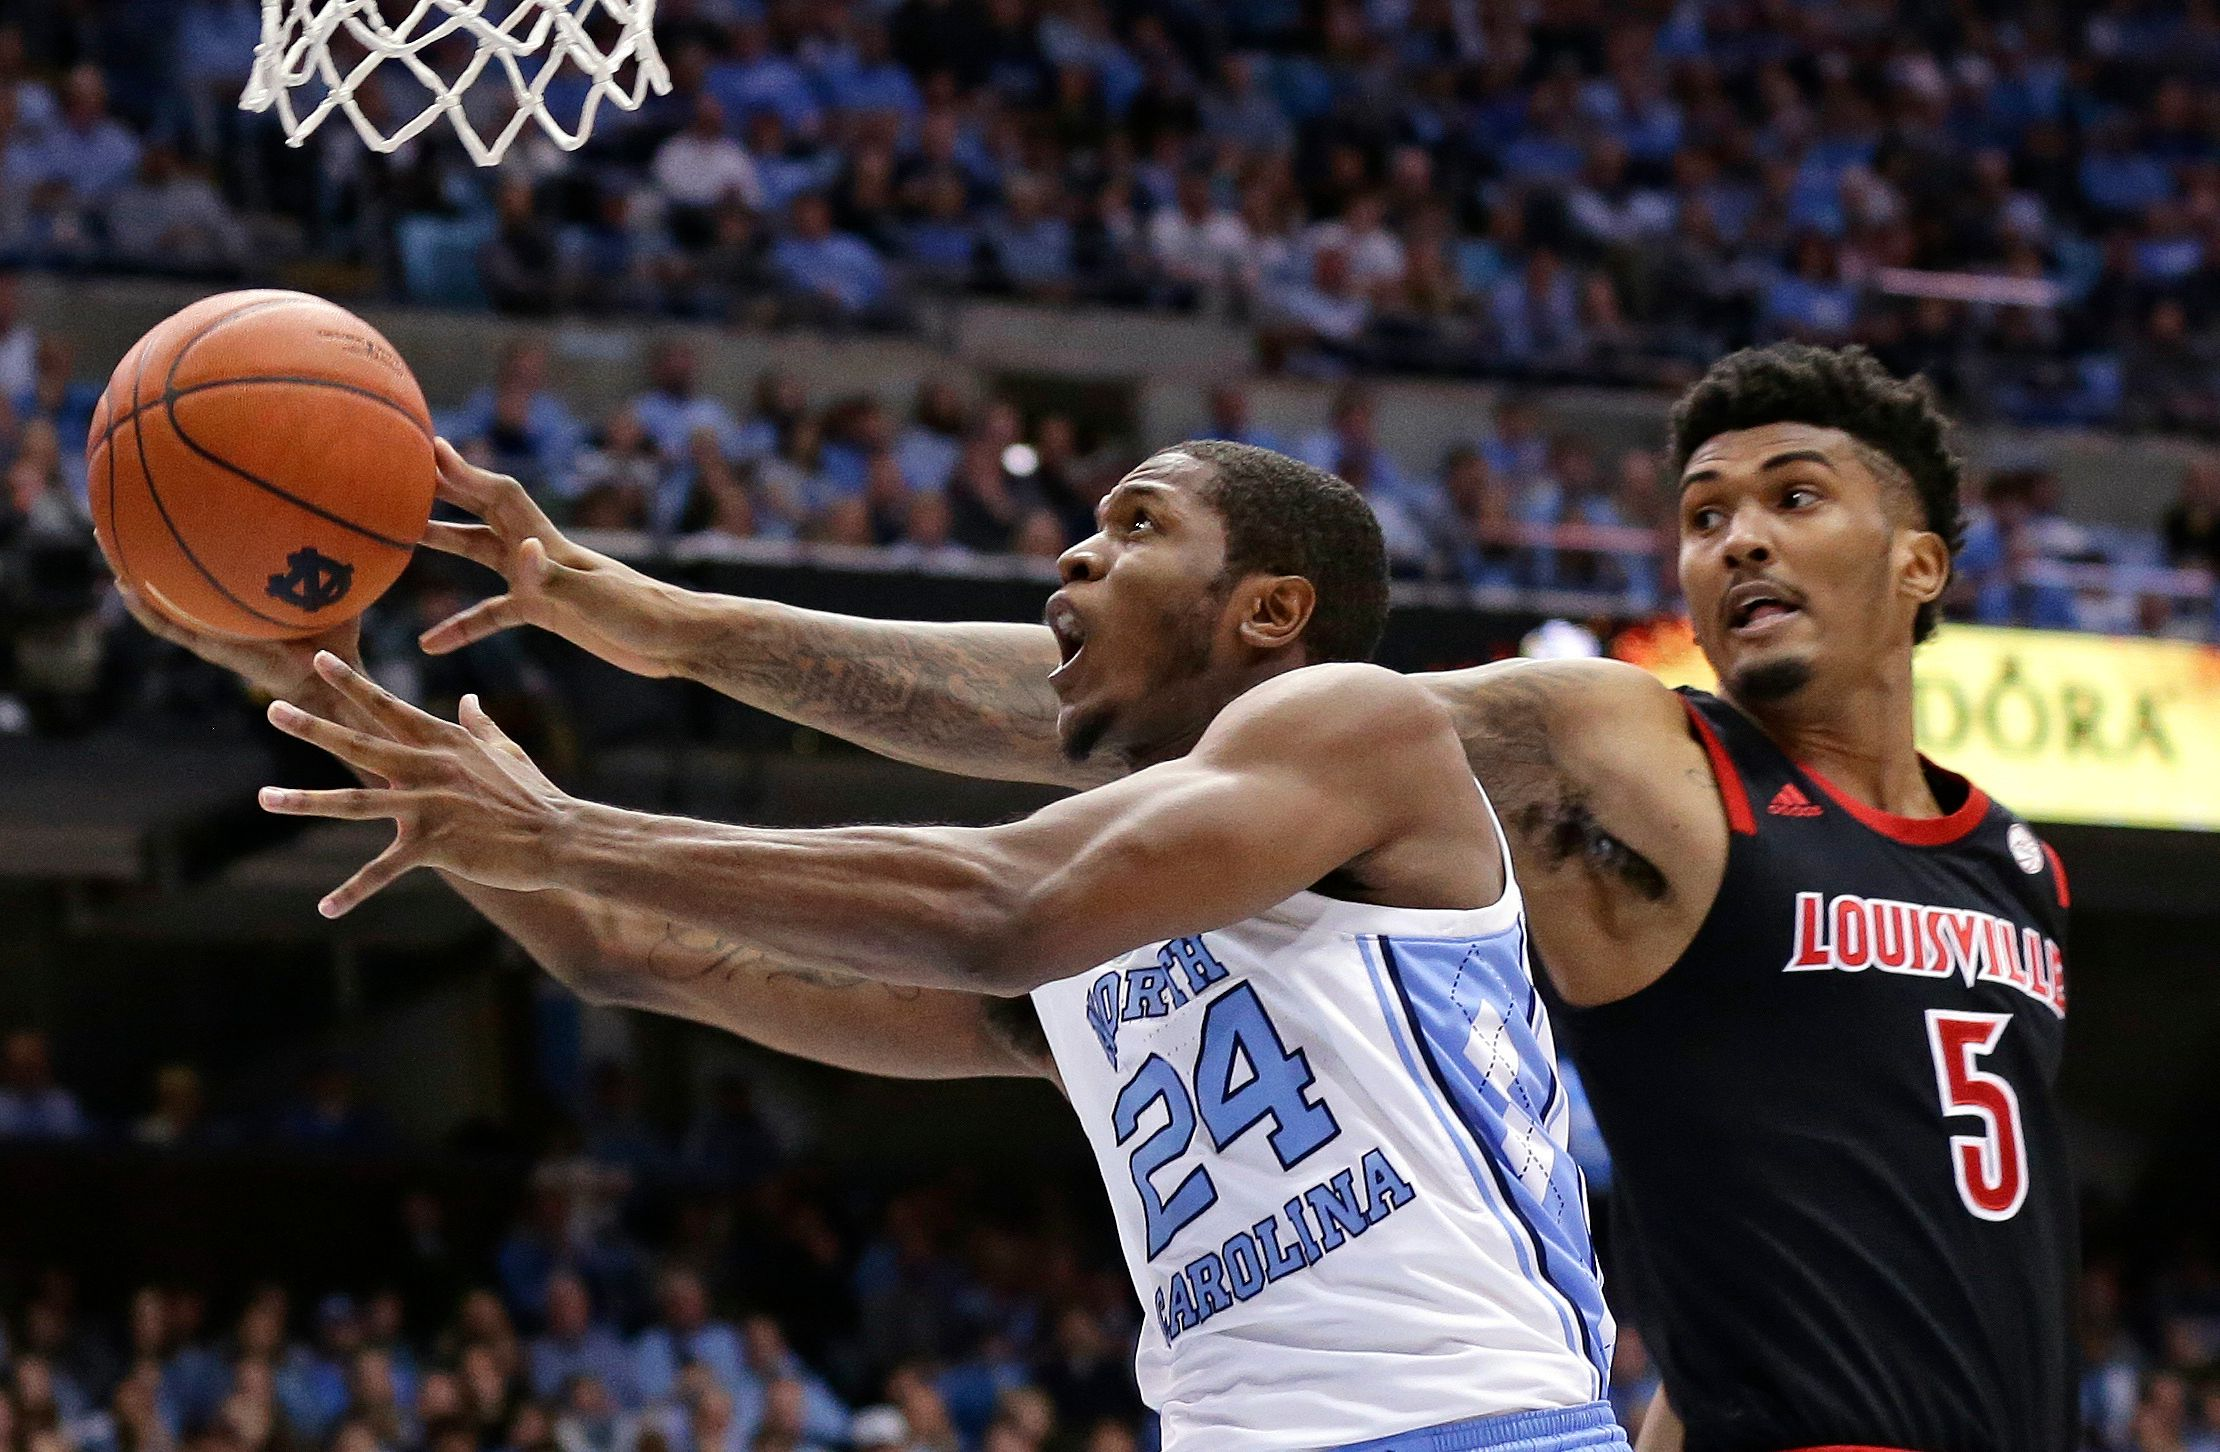 Louisville stuns No. 12 North Carolina 83-62 on the road